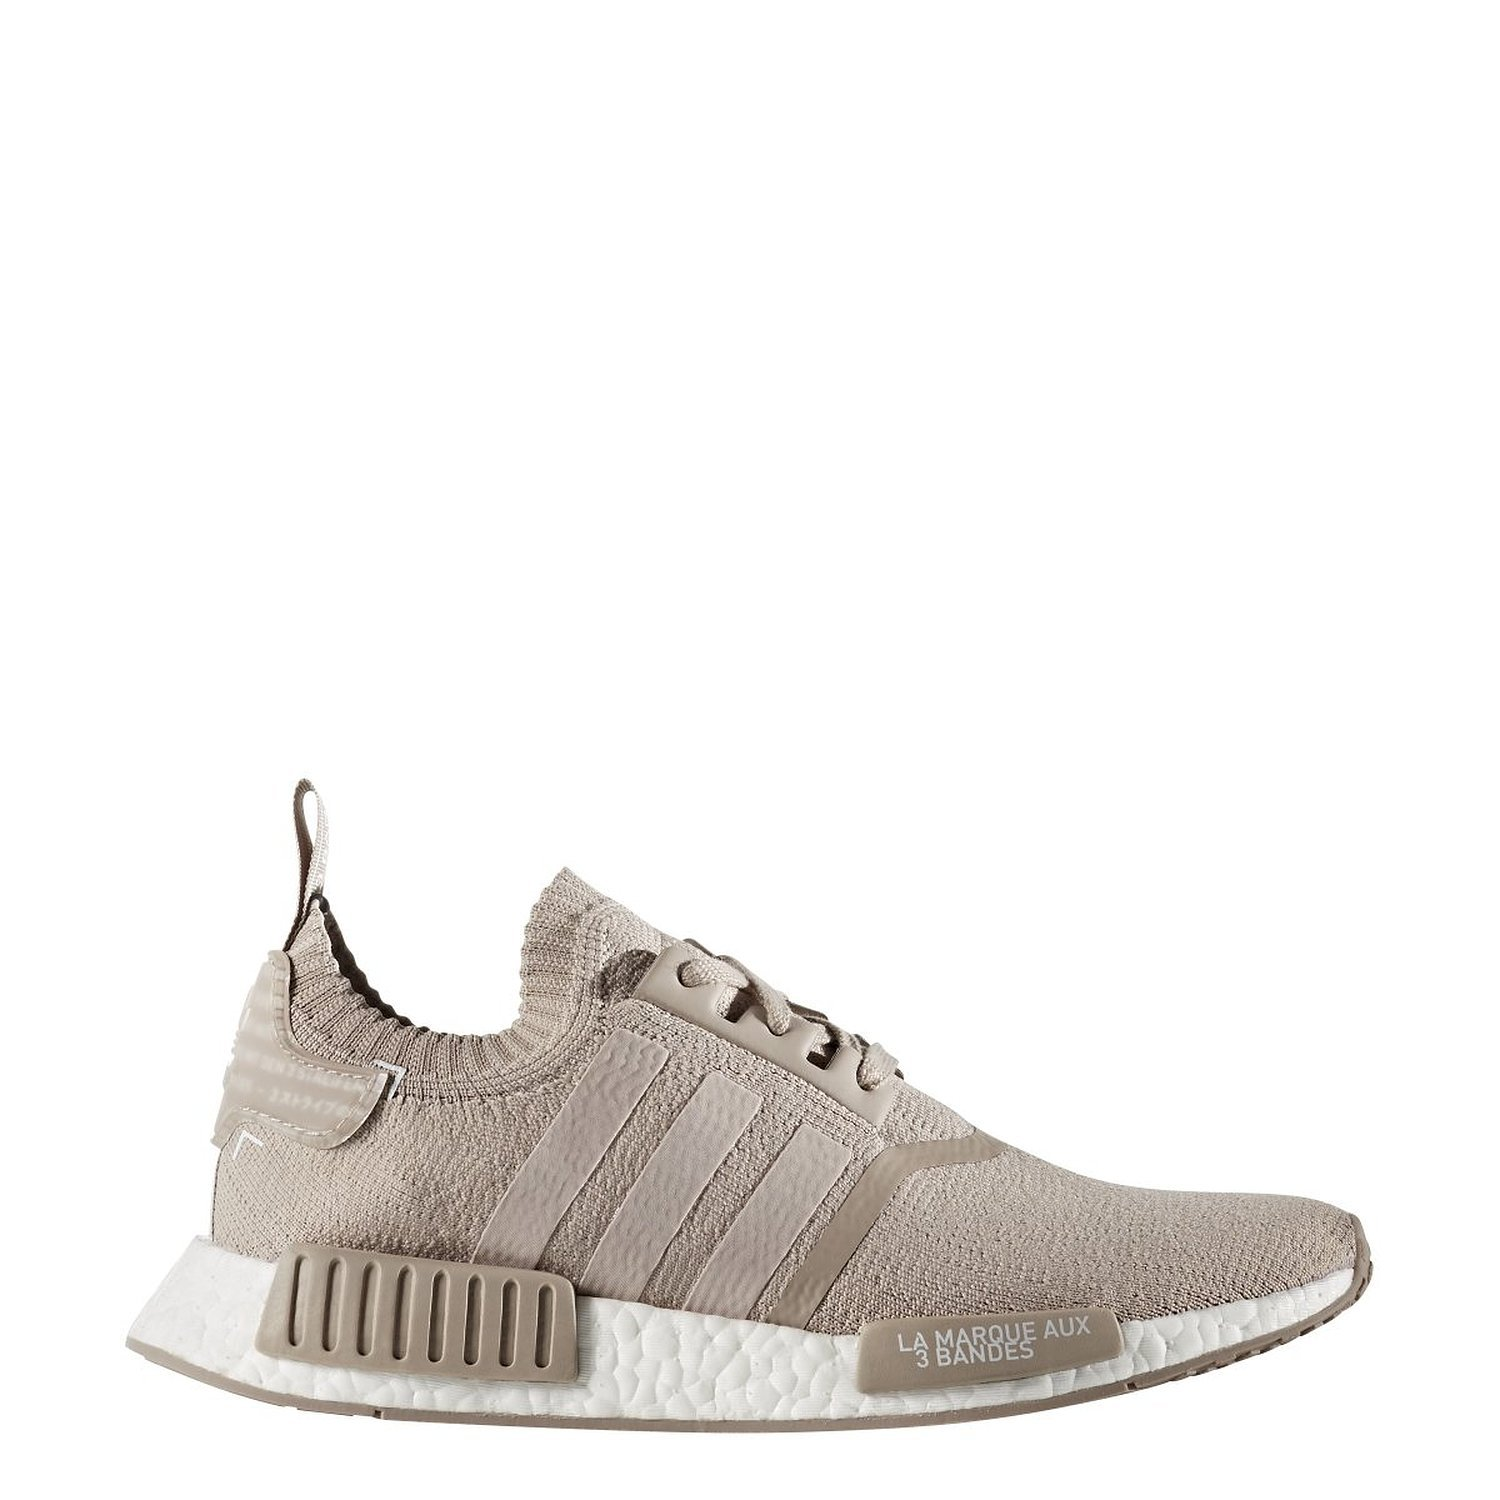 """Adidas NMD_R1 PK S81848 """"FRENCH BEIGE"""" Women's US6.5"""